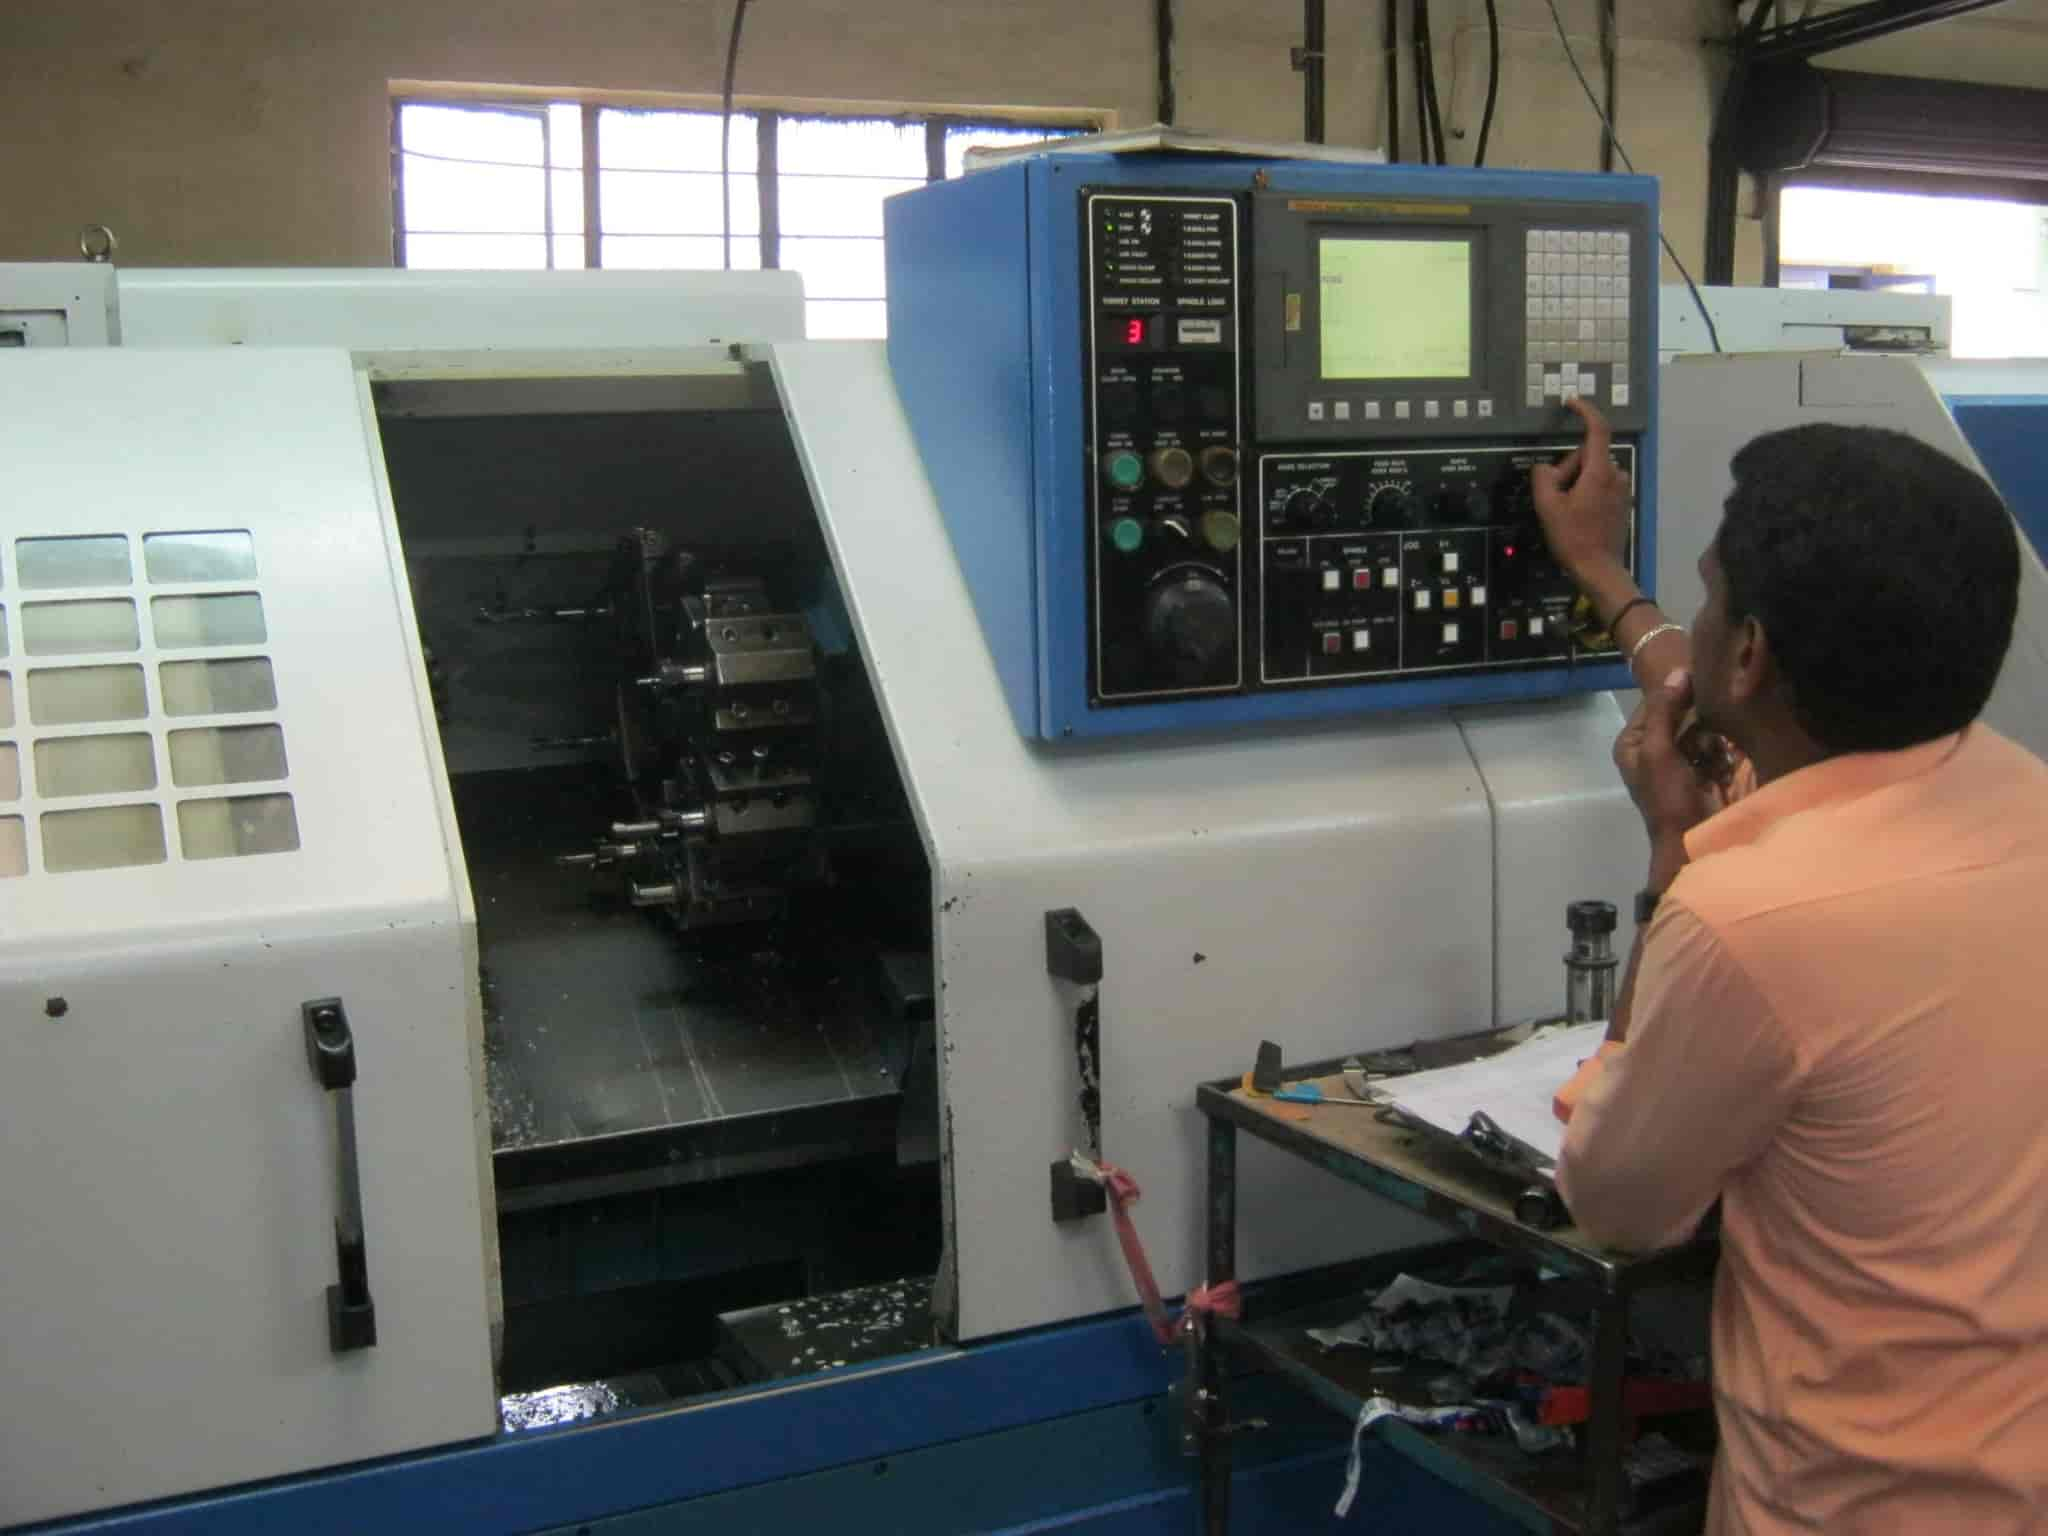 Hindustaan Cnc Training Center, Hosur - Computer Training